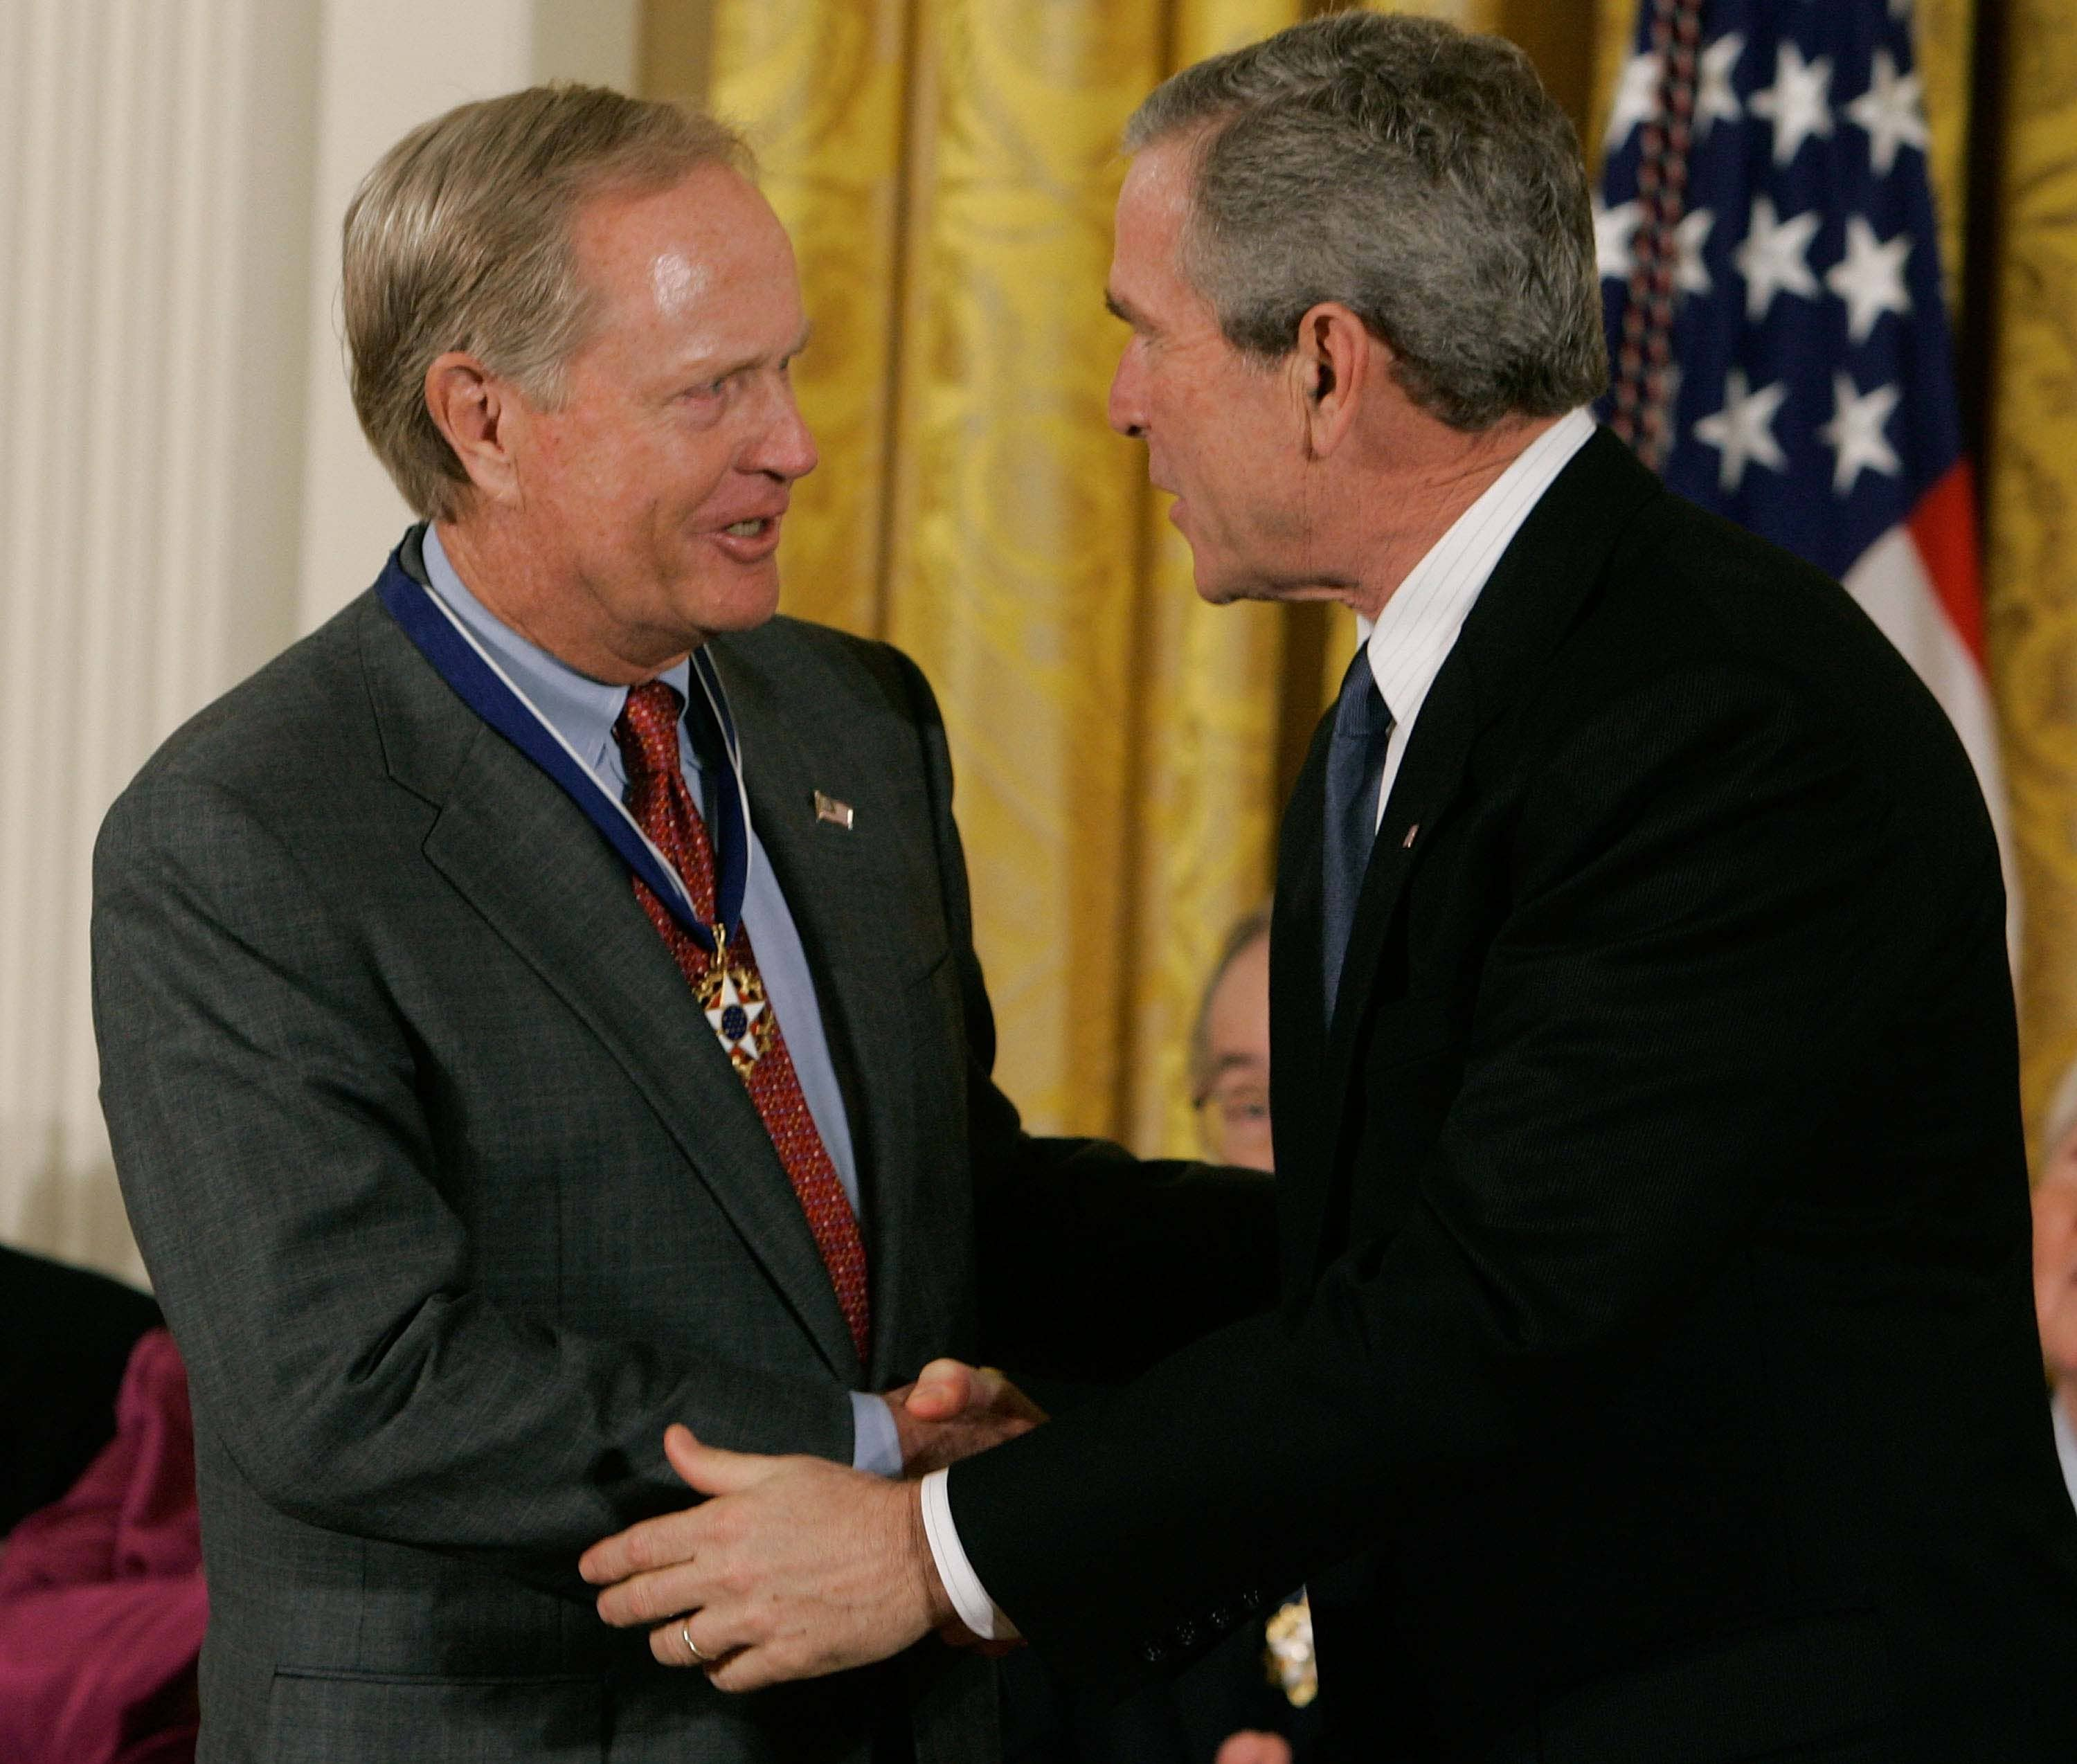 George W. Bush and Jack Nicklaus